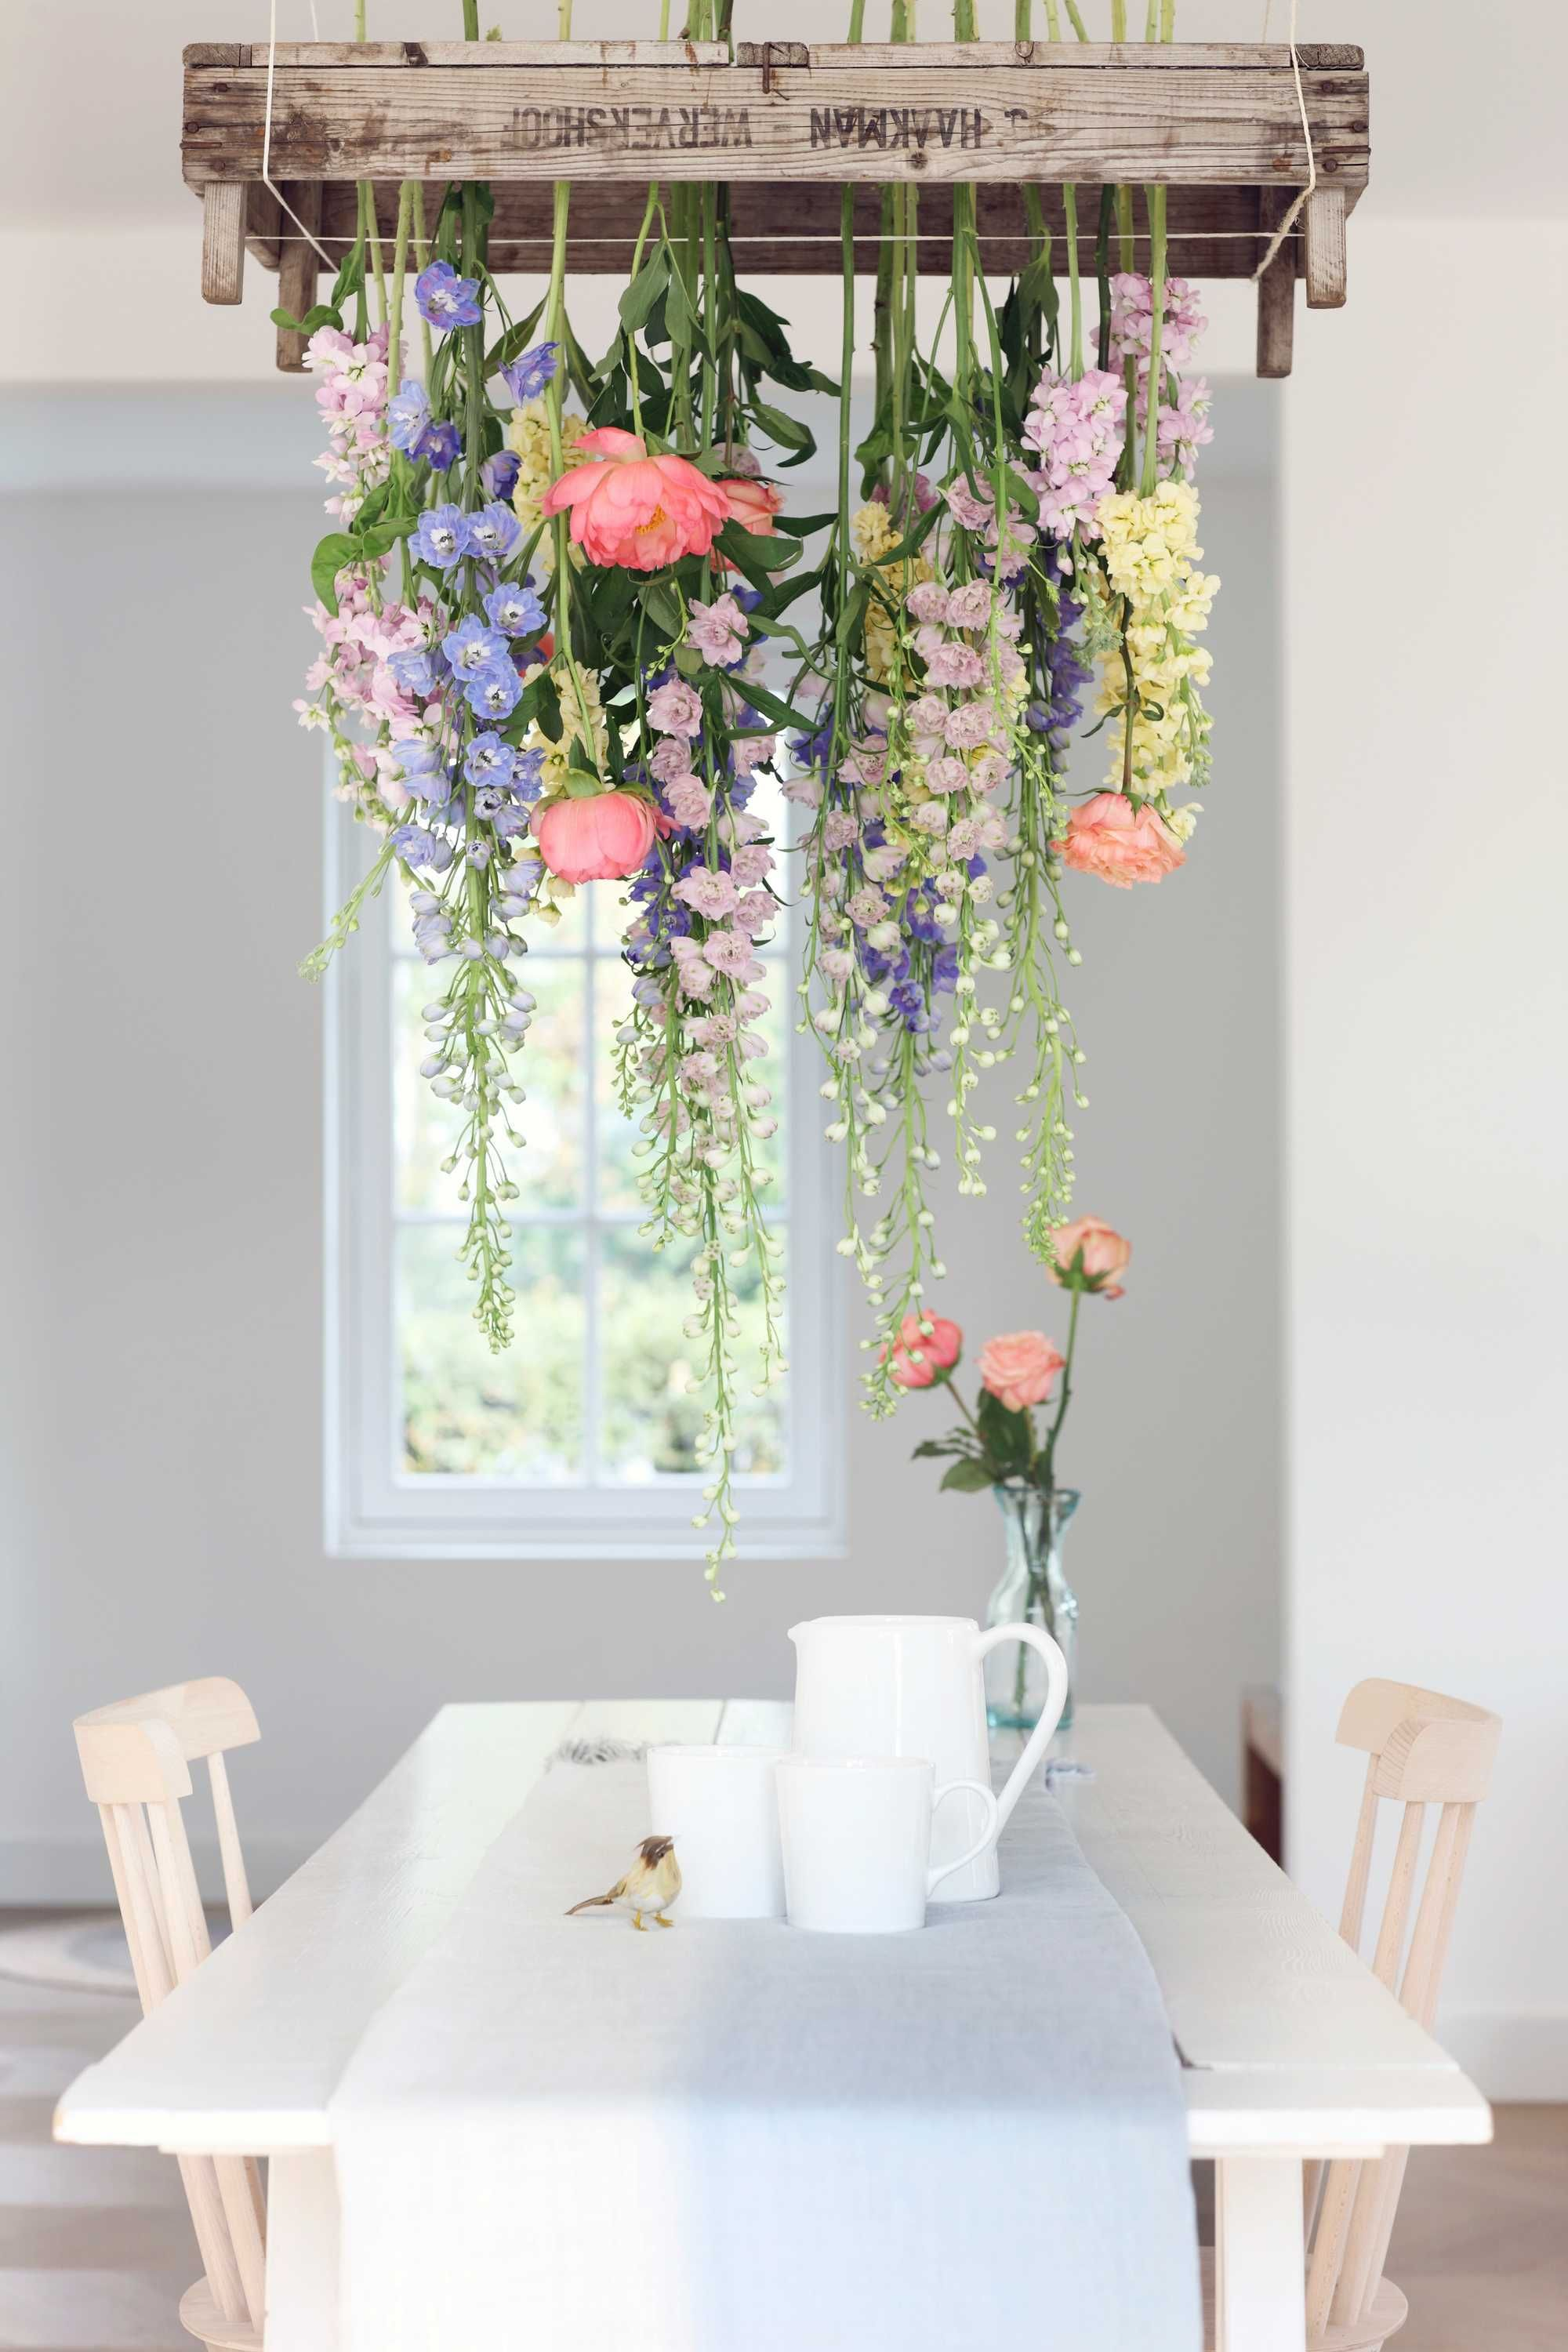 Superbe Flowers In The Dining Room Is Always A Good Idea, But This Gorgeous  Arrangement Hanging From The Ceiling Takes The Idea To A Whole New Place.  Love!